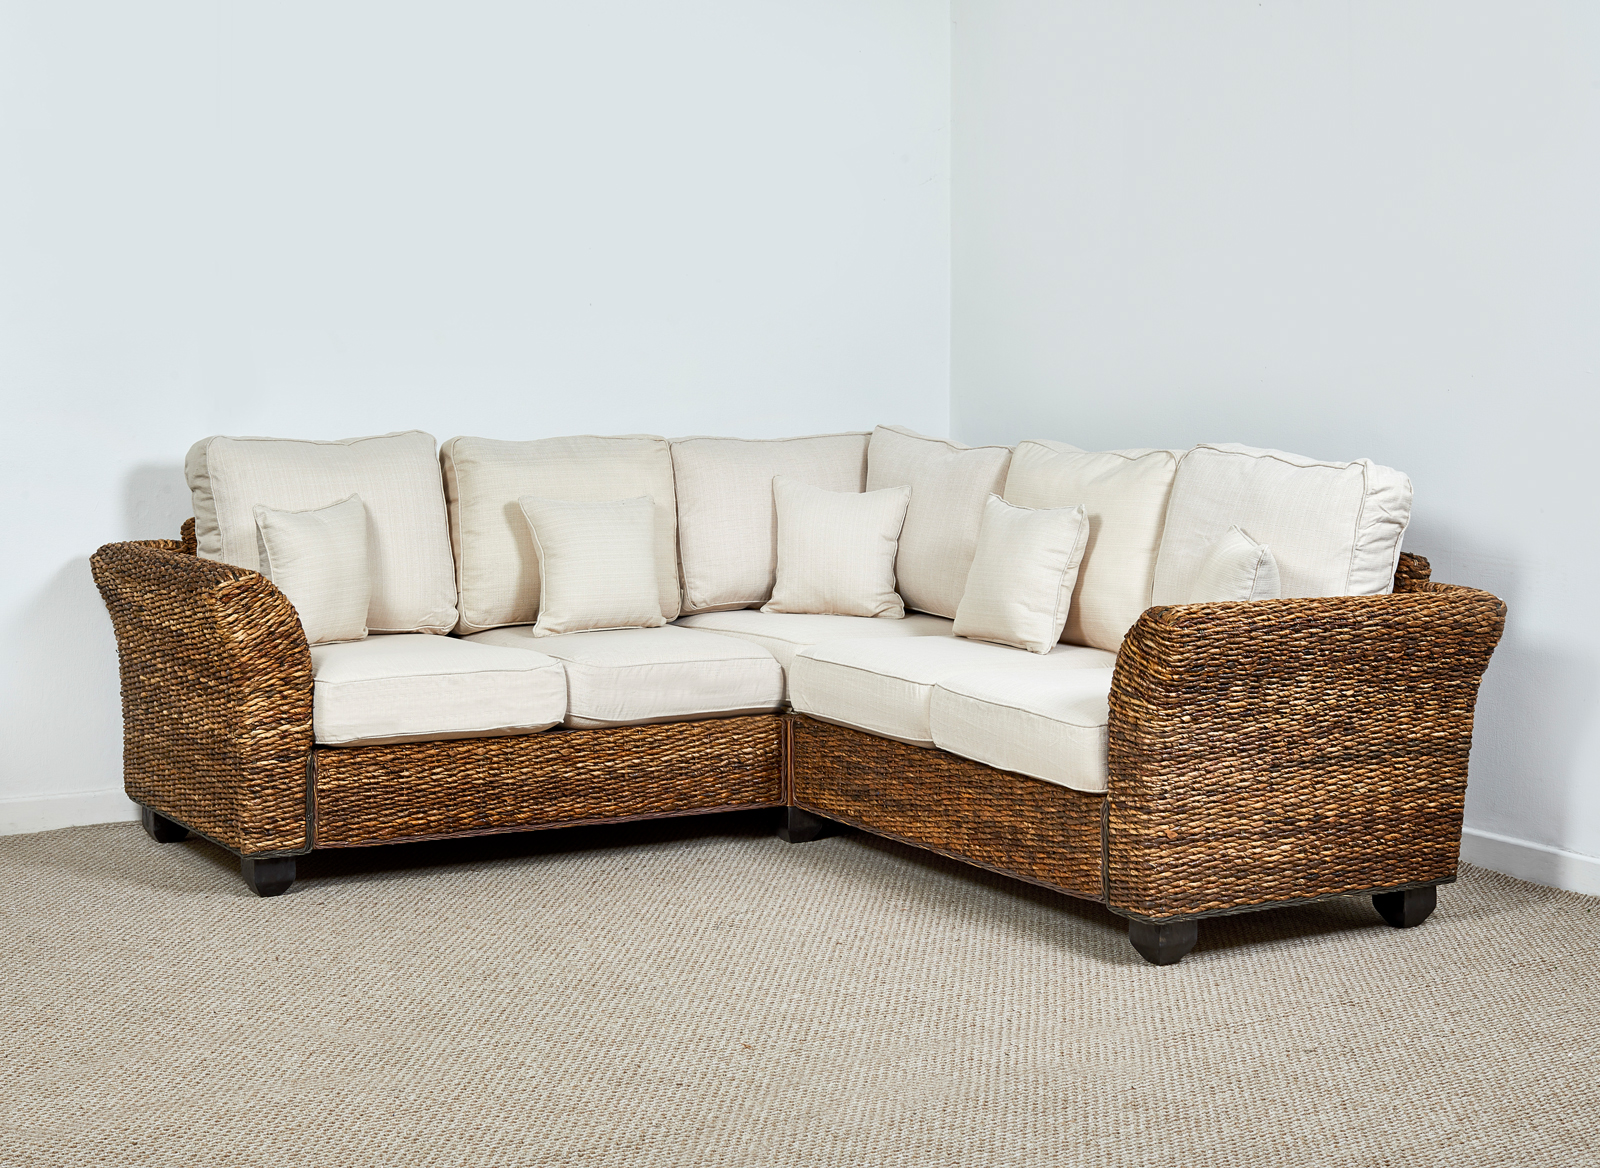 Rattan Conservatory 4 Seater Corner Sofa In Oatmeal Kingston Abaca 161cm X 216cm